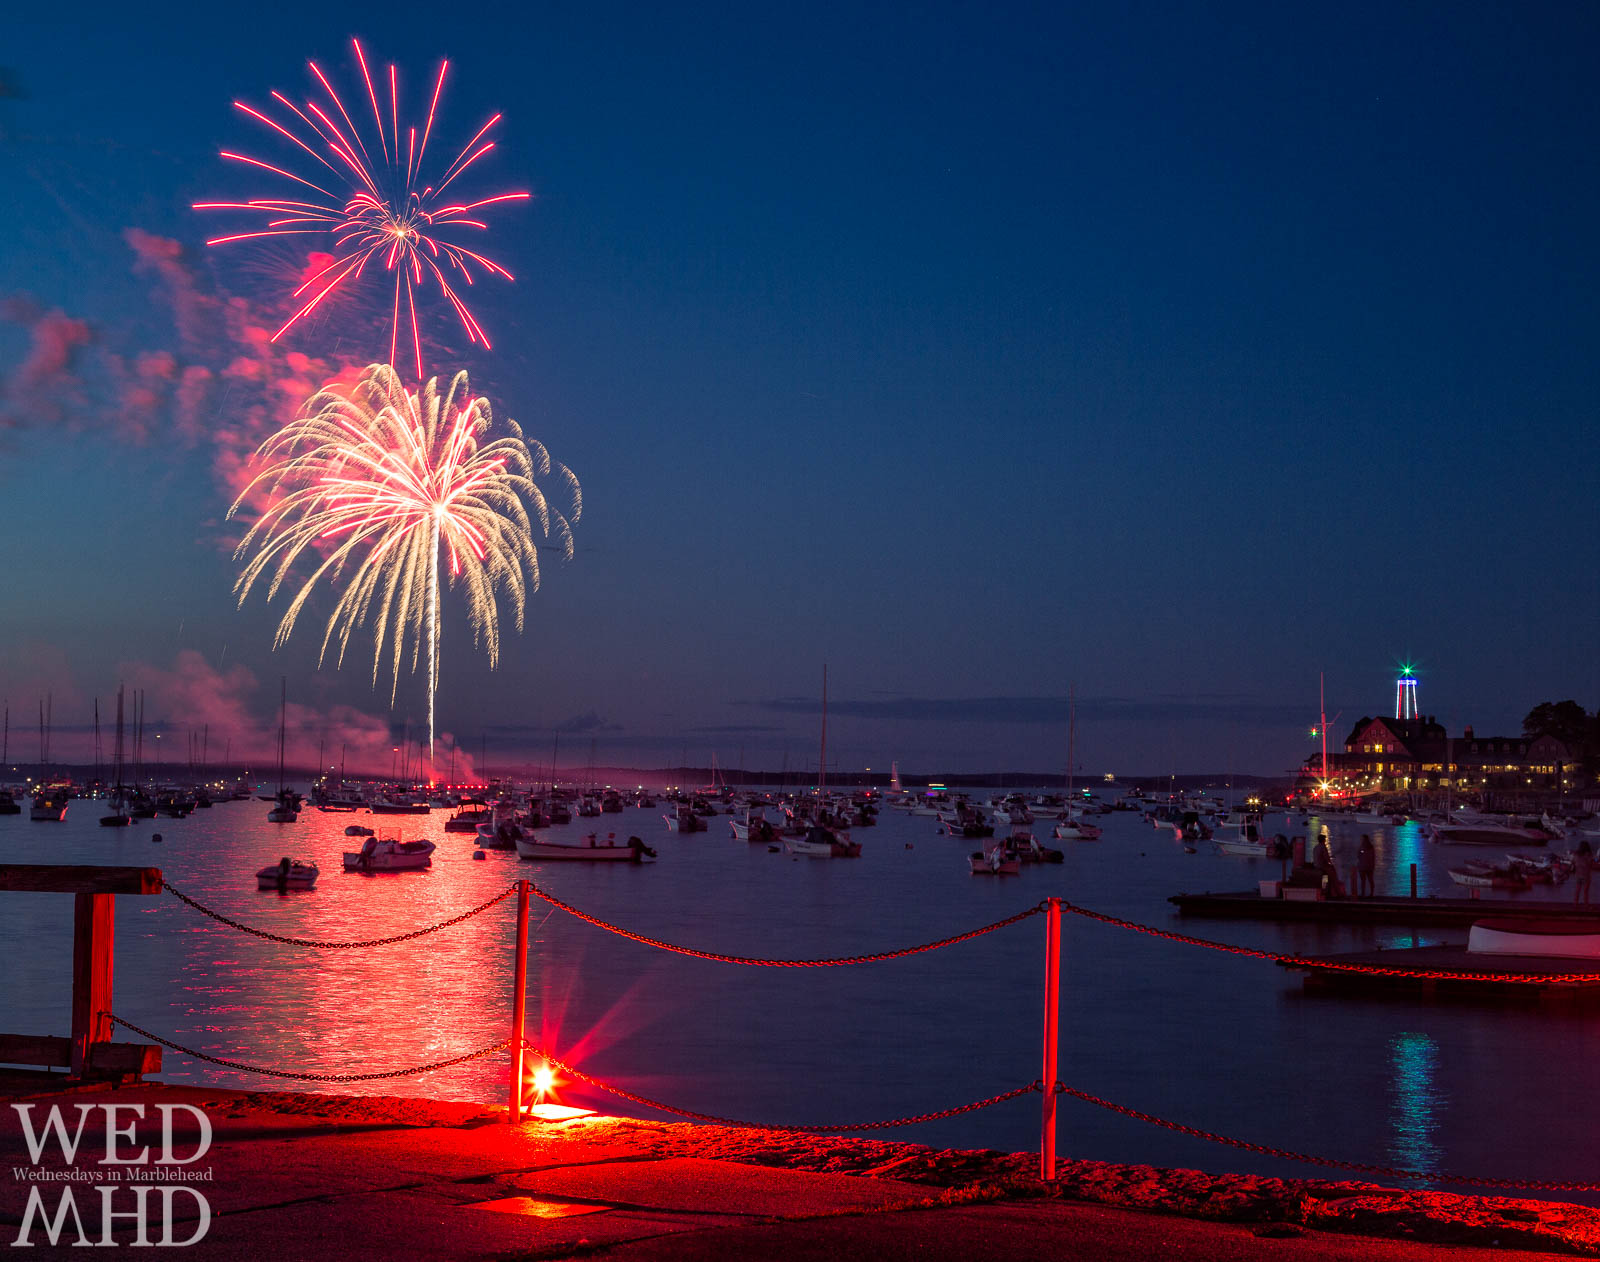 A lone flare, two fireworks and an illuminated lighthouse show why celebrating Independence Day in Marblehead is so special